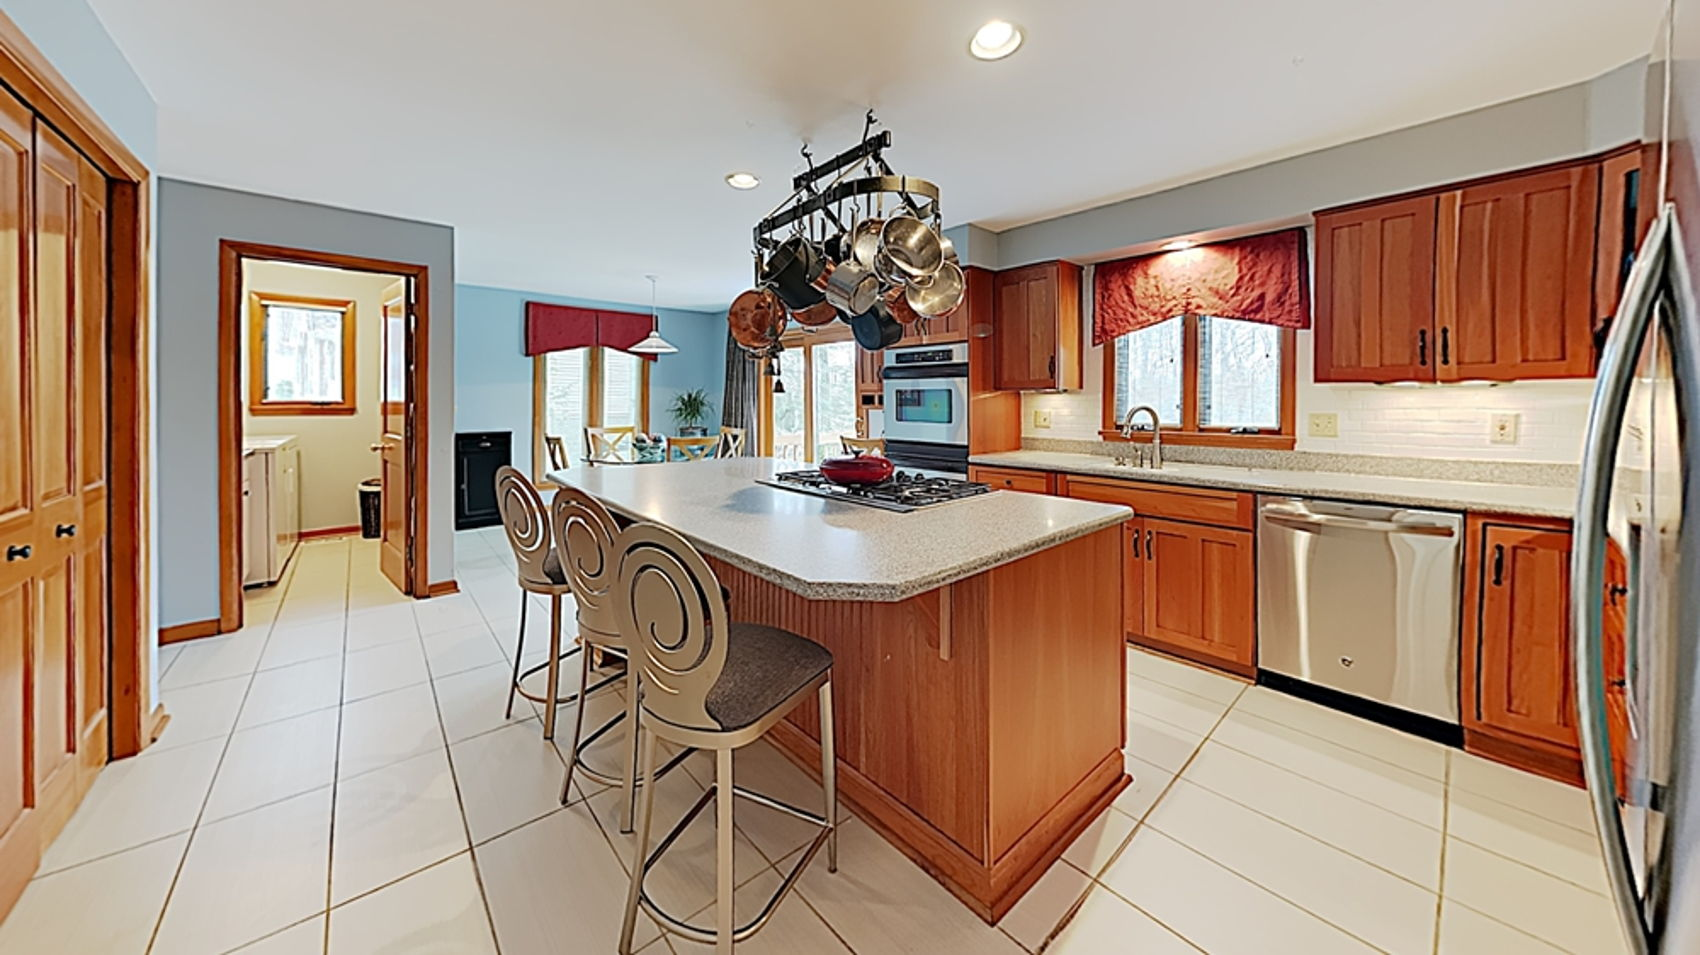 Updated, stainless appliances